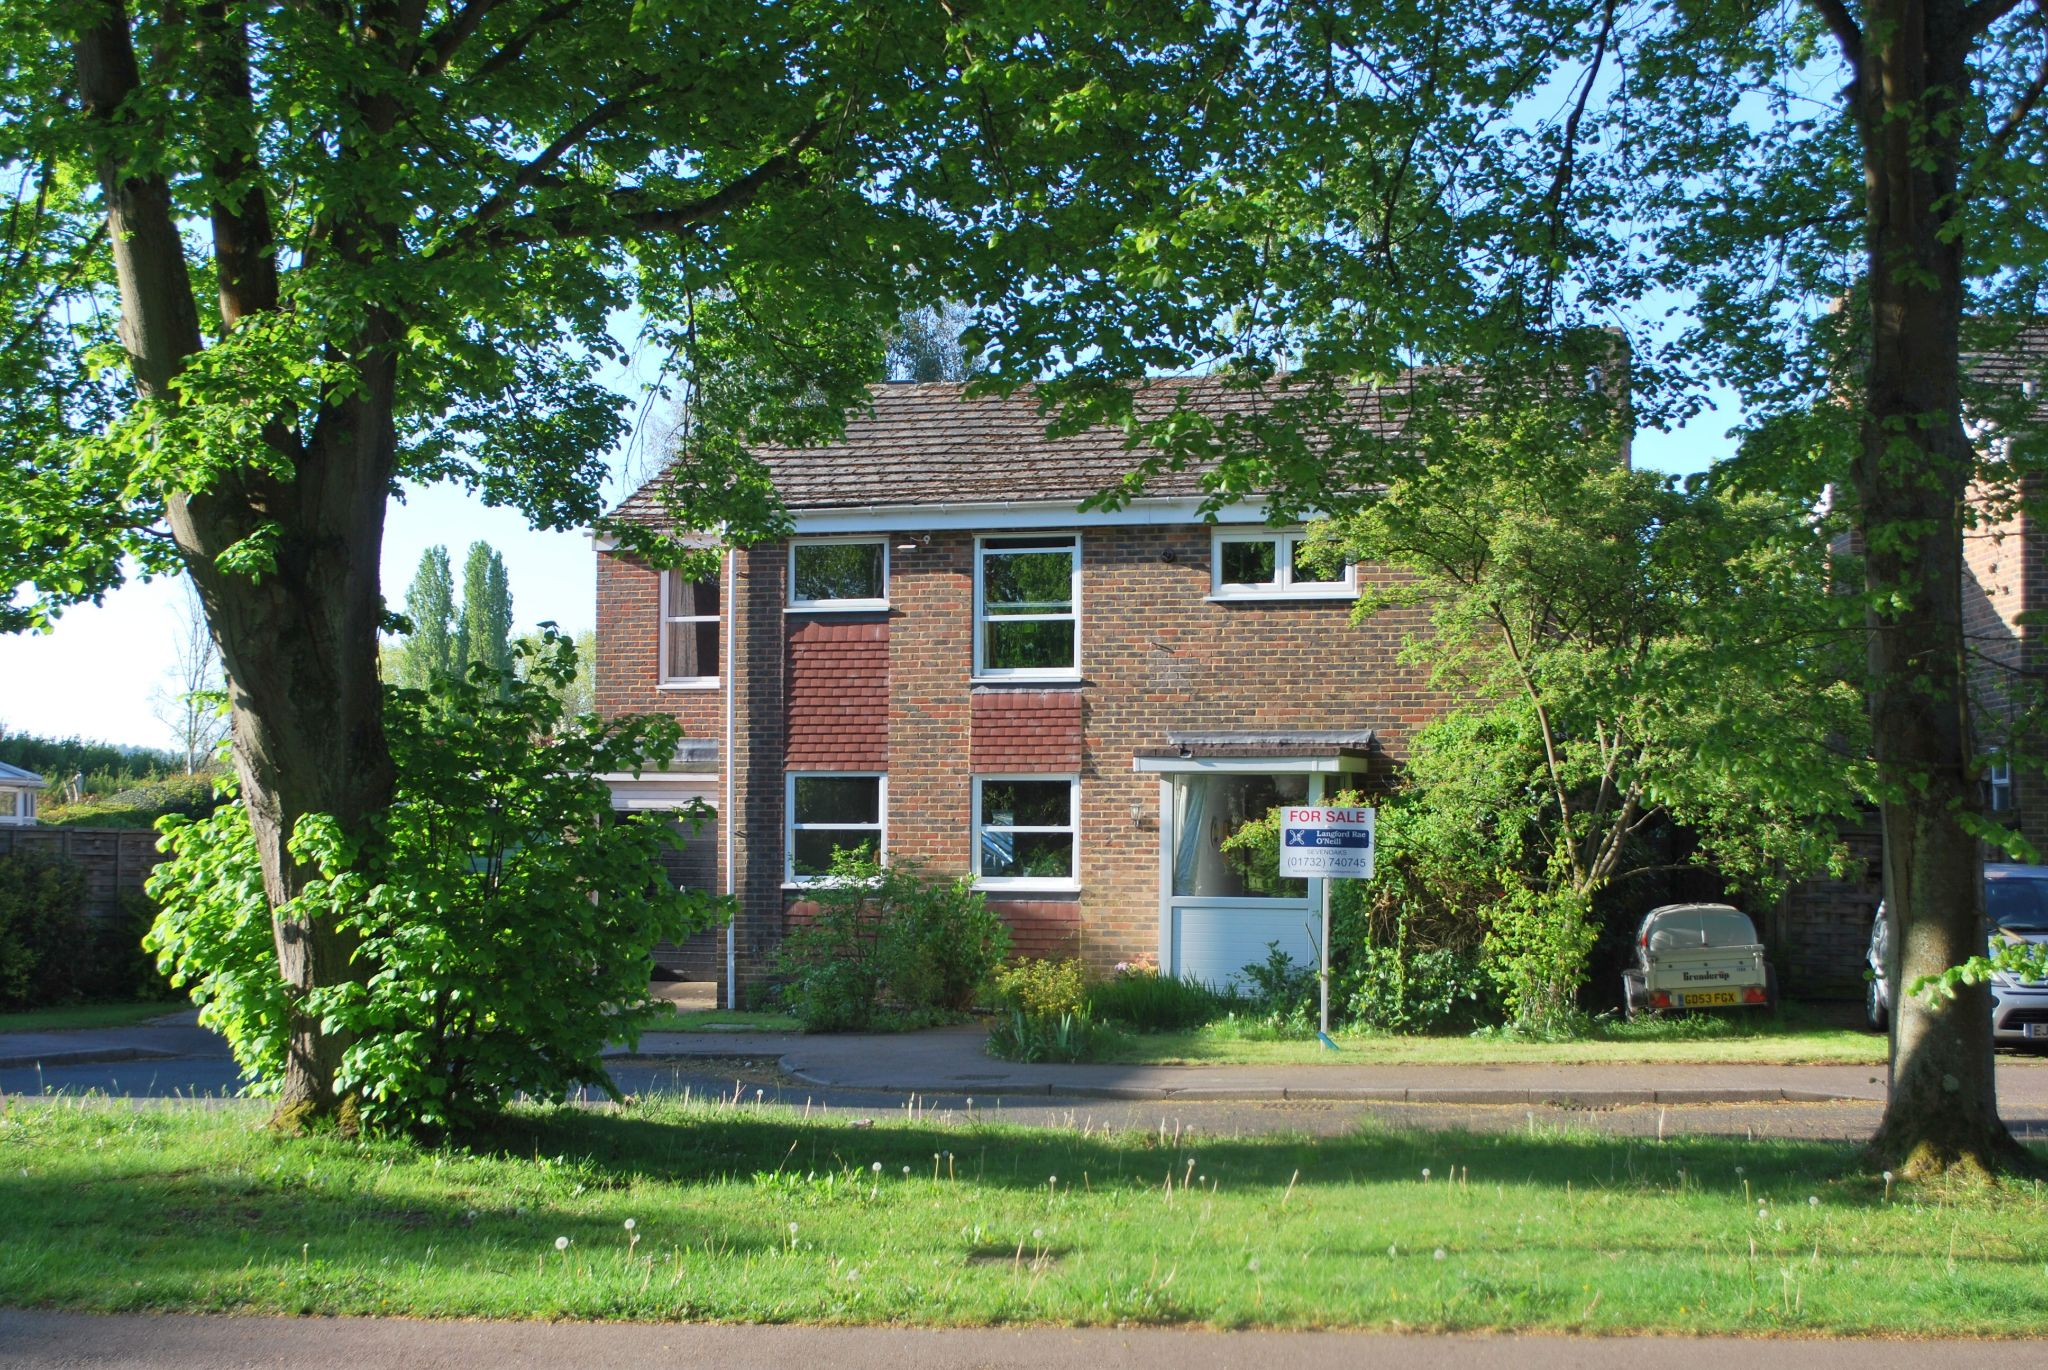 5 bedroom detached house Sale Agreed in Tonbridge - Photograph 1